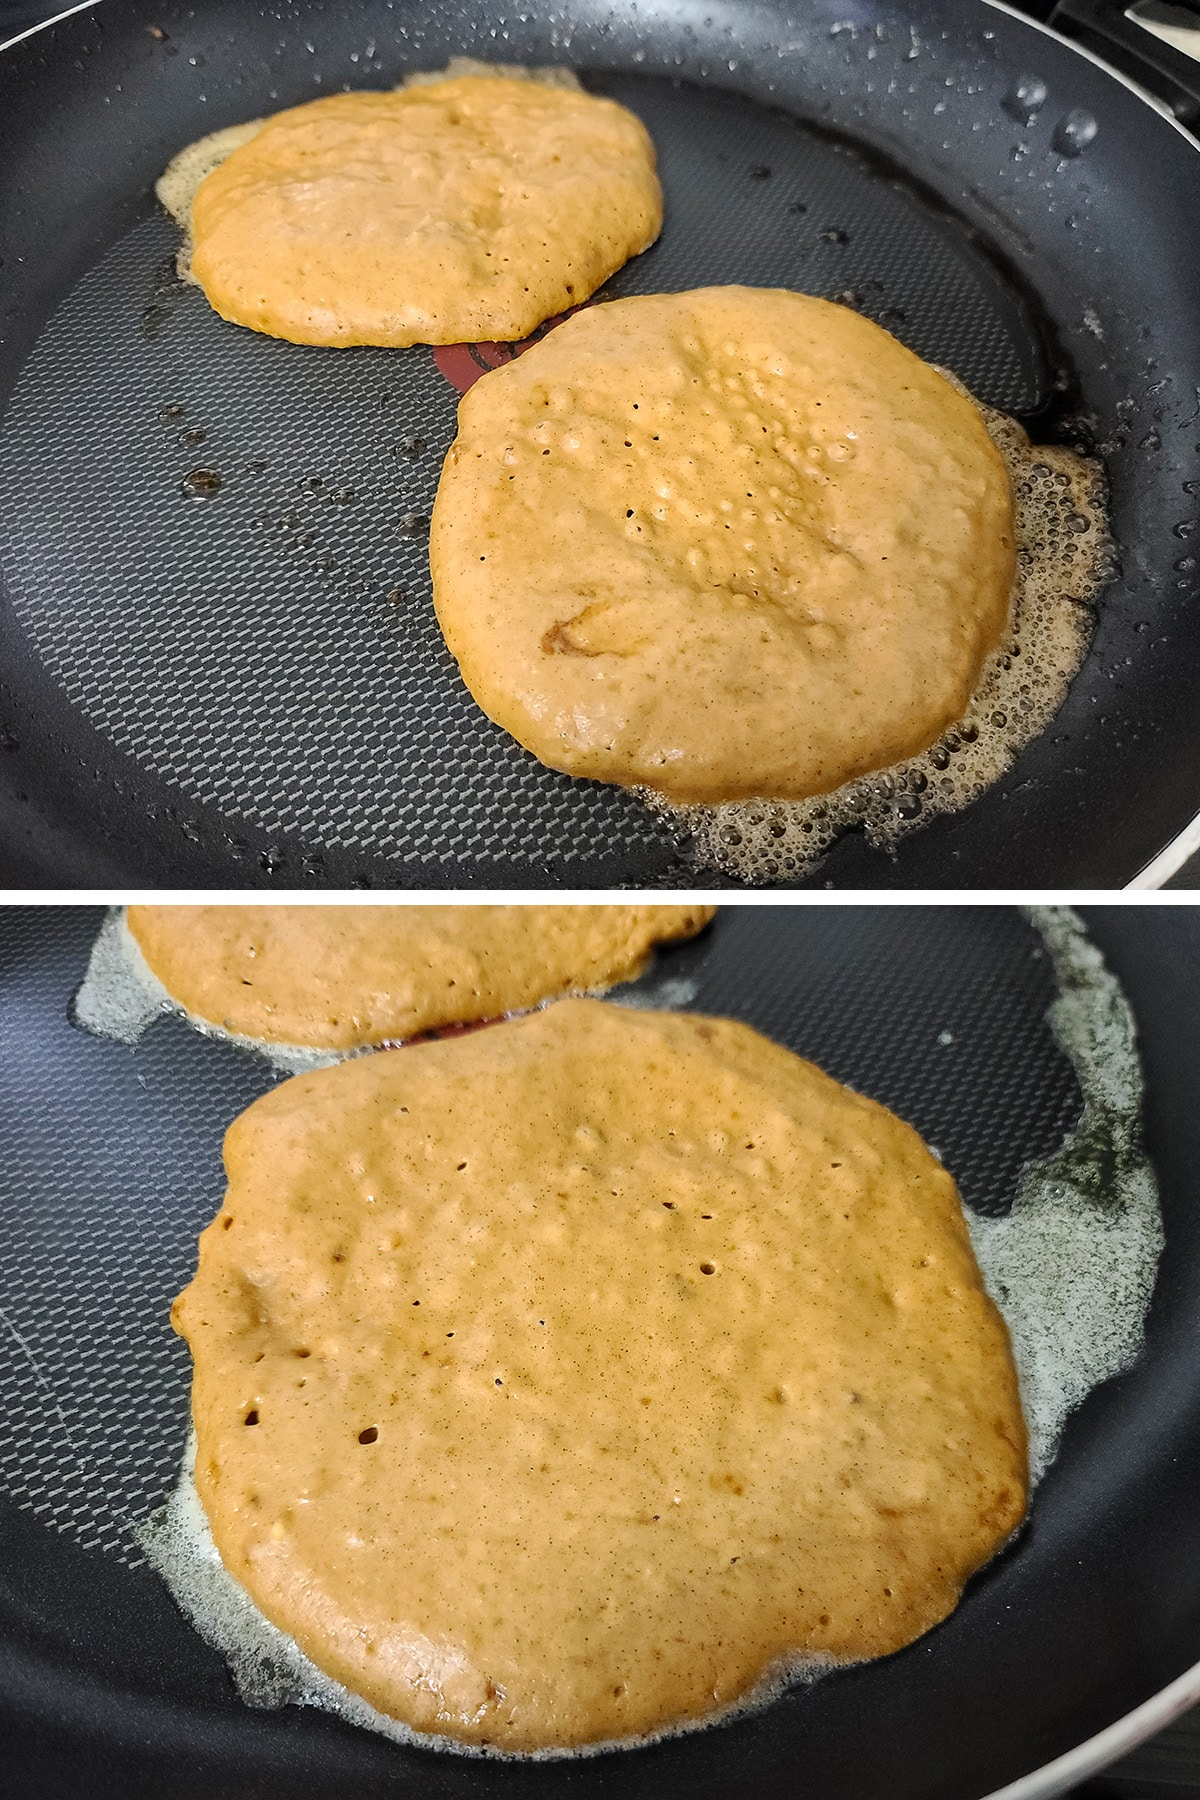 The tops of the pancakes as they're ready to flip - they look a little dry, air bubbles have risen and popped.